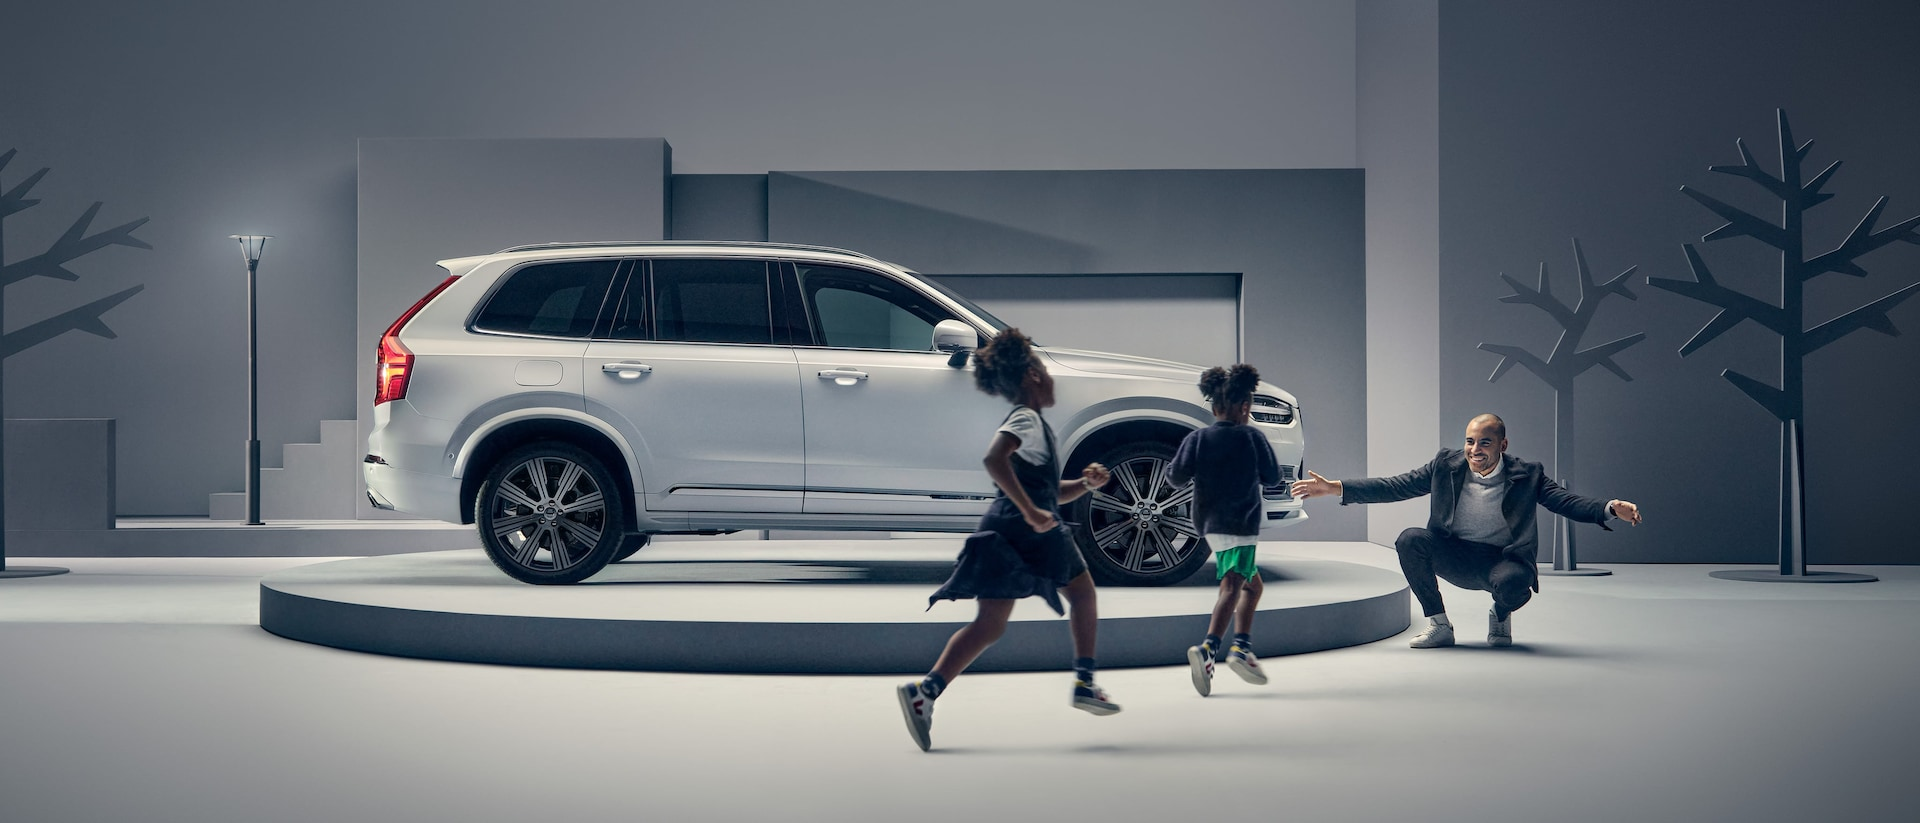 A man greets two children in front of a Volvo on a podium.